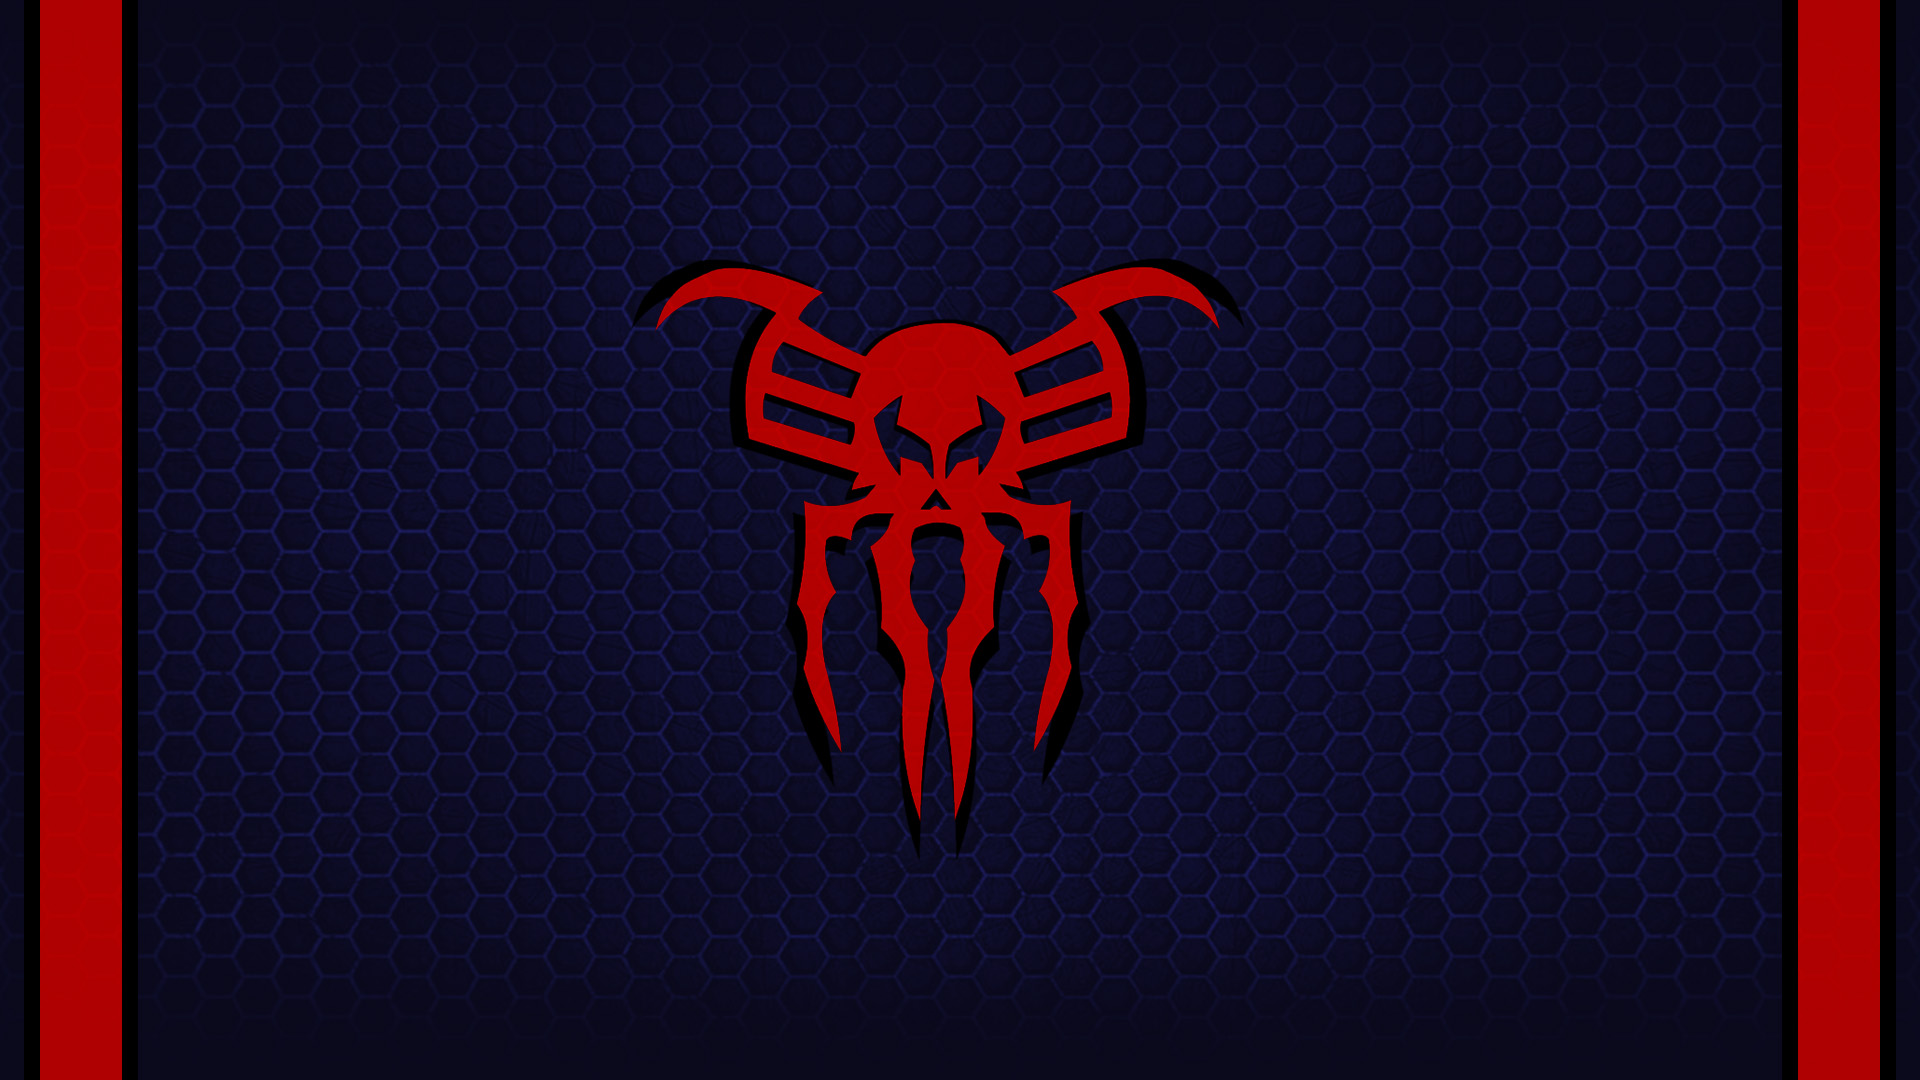 Spiderman 2099 Wallpaper By Fire Dash 89 On Deviantart